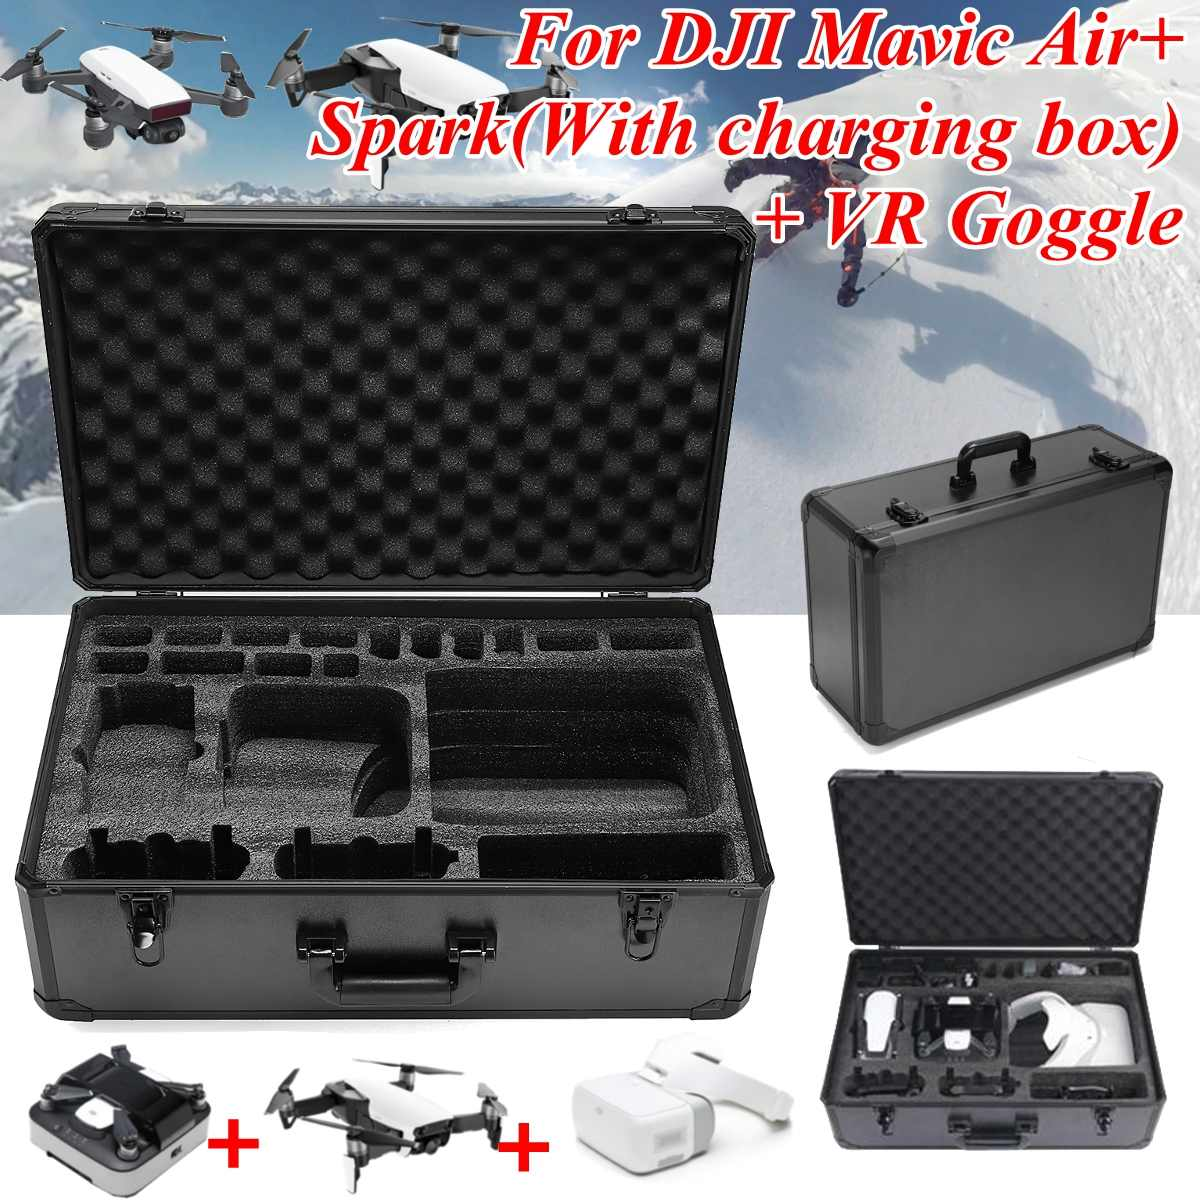 Aluminum alloy carrying case for DJI Mavic Air Spark VR Google in black colour with EPE large capacity and lightweightAluminum alloy carrying case for DJI Mavic Air Spark VR Google in black colour with EPE large capacity and lightweight